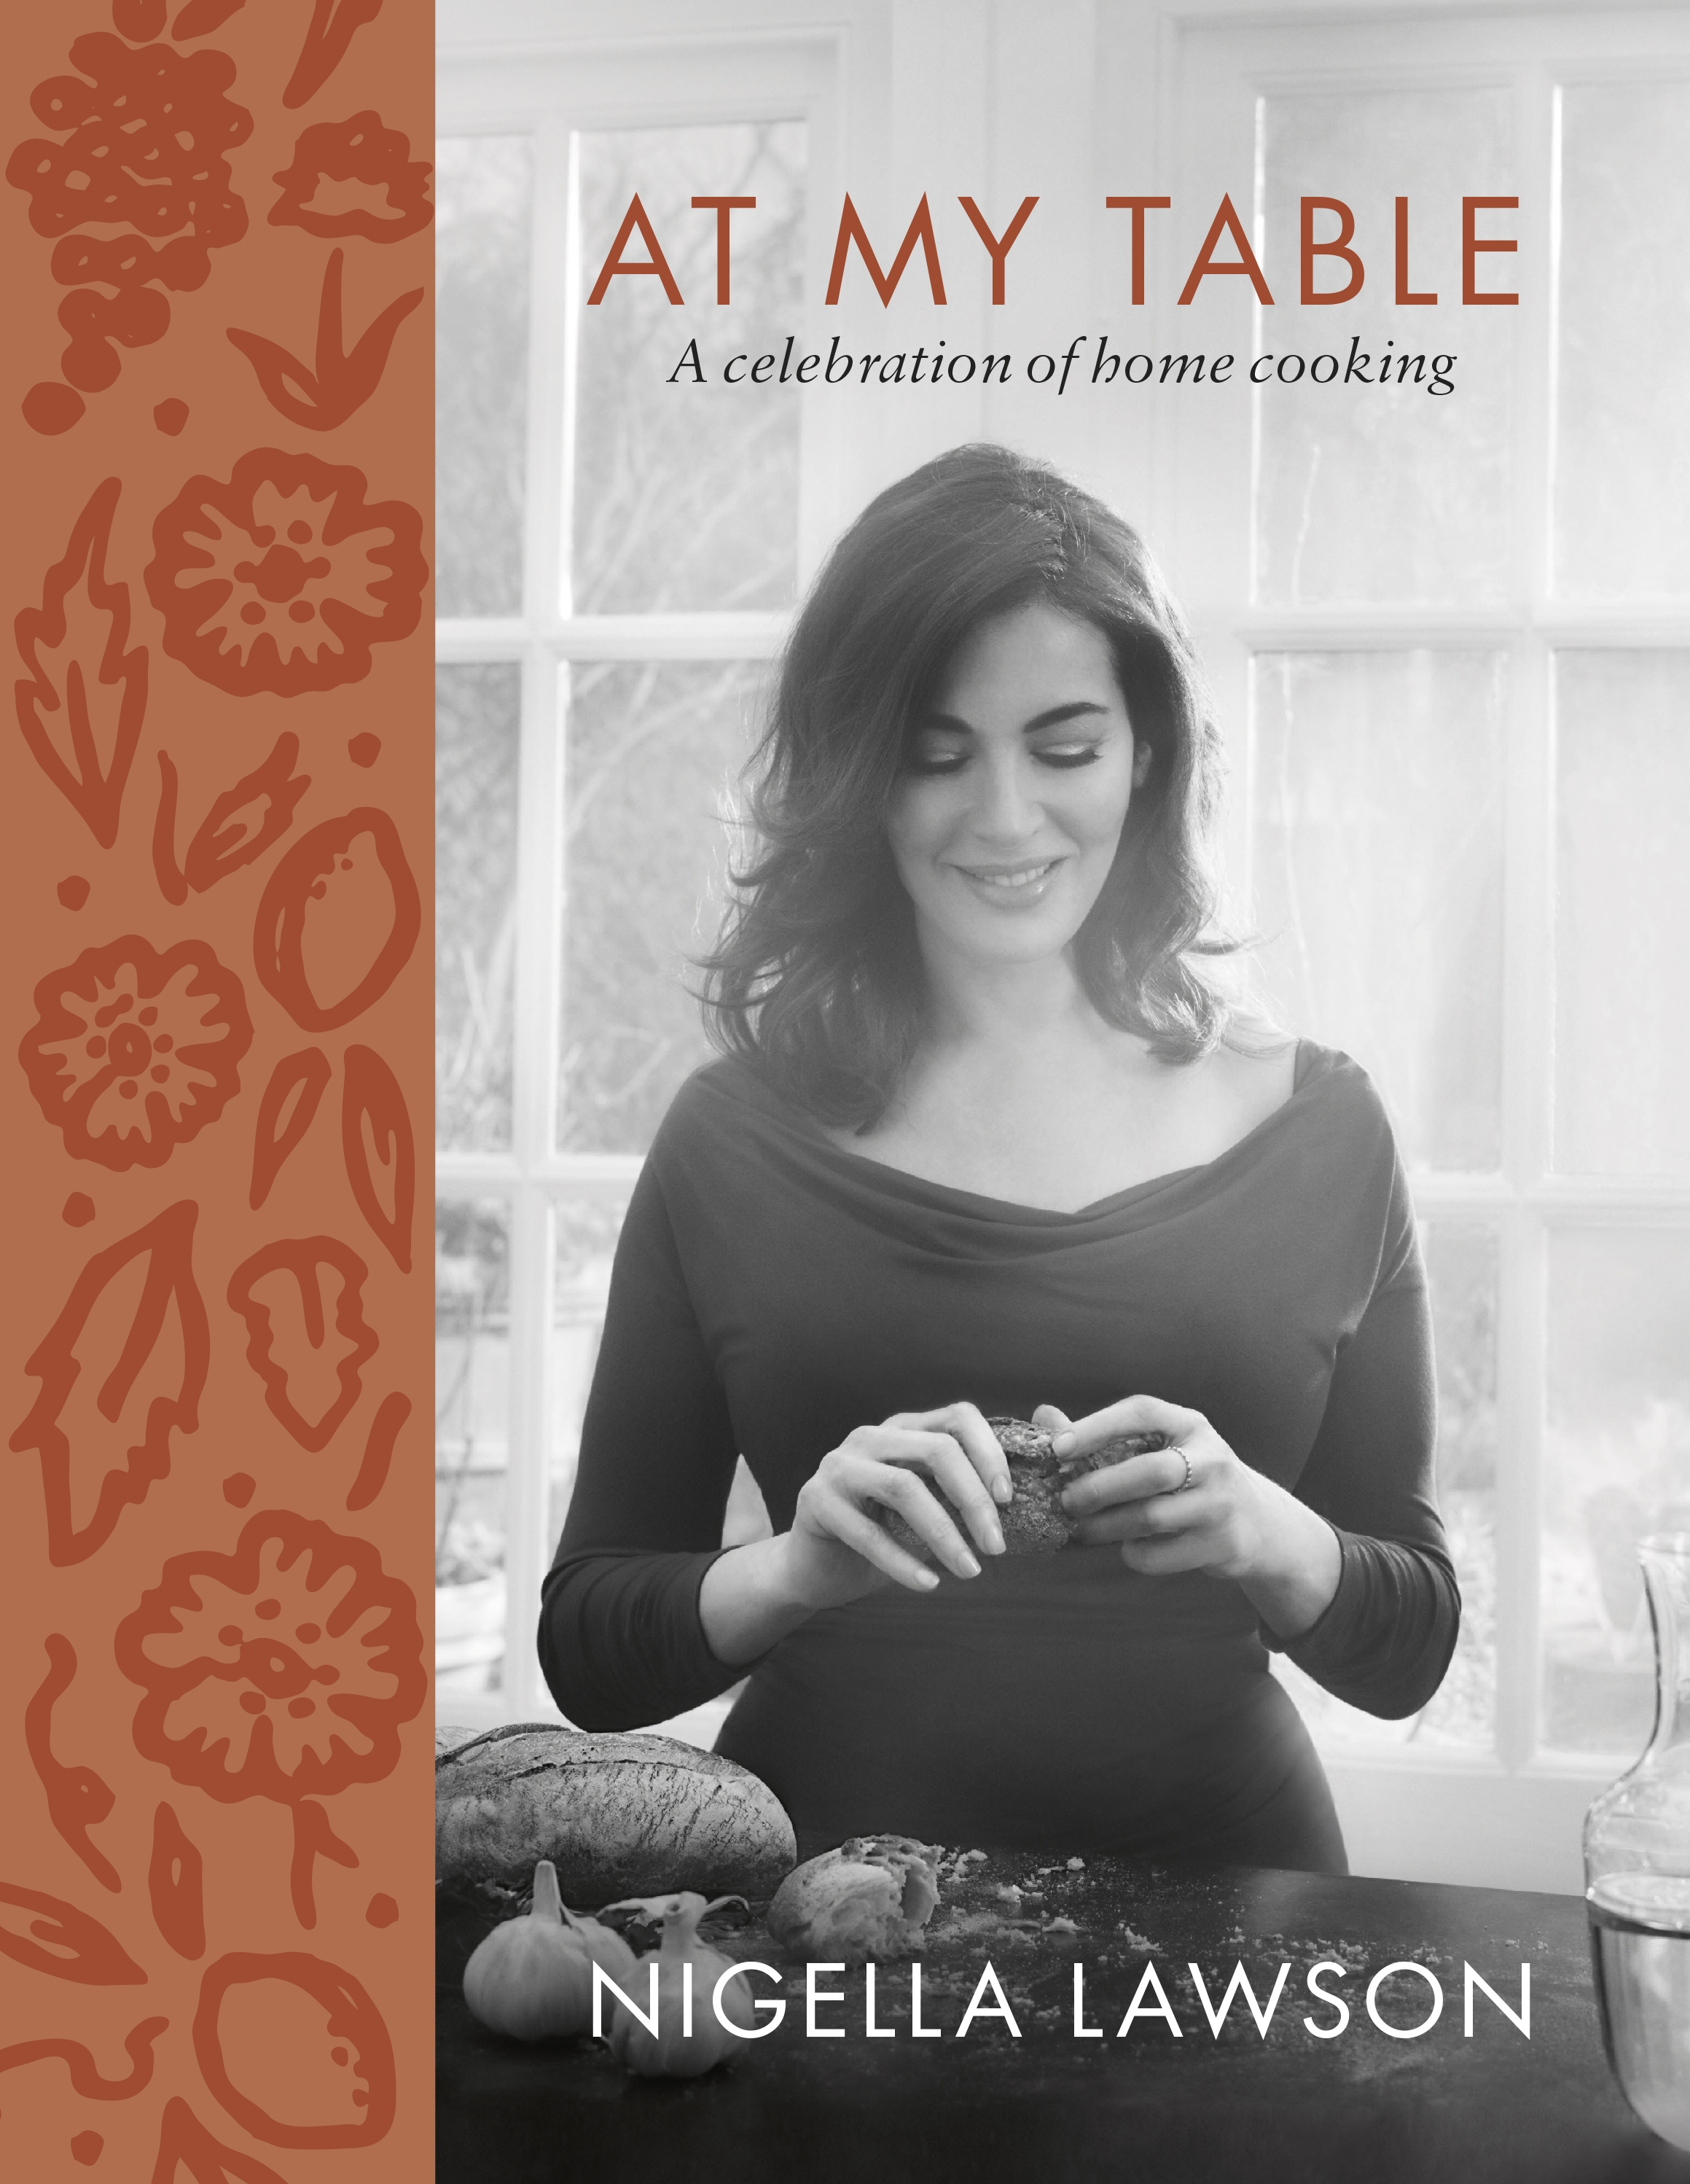 At My Table: A Celebration of Home Cooking by Nigella Lawson, ISBN: 9781784741631